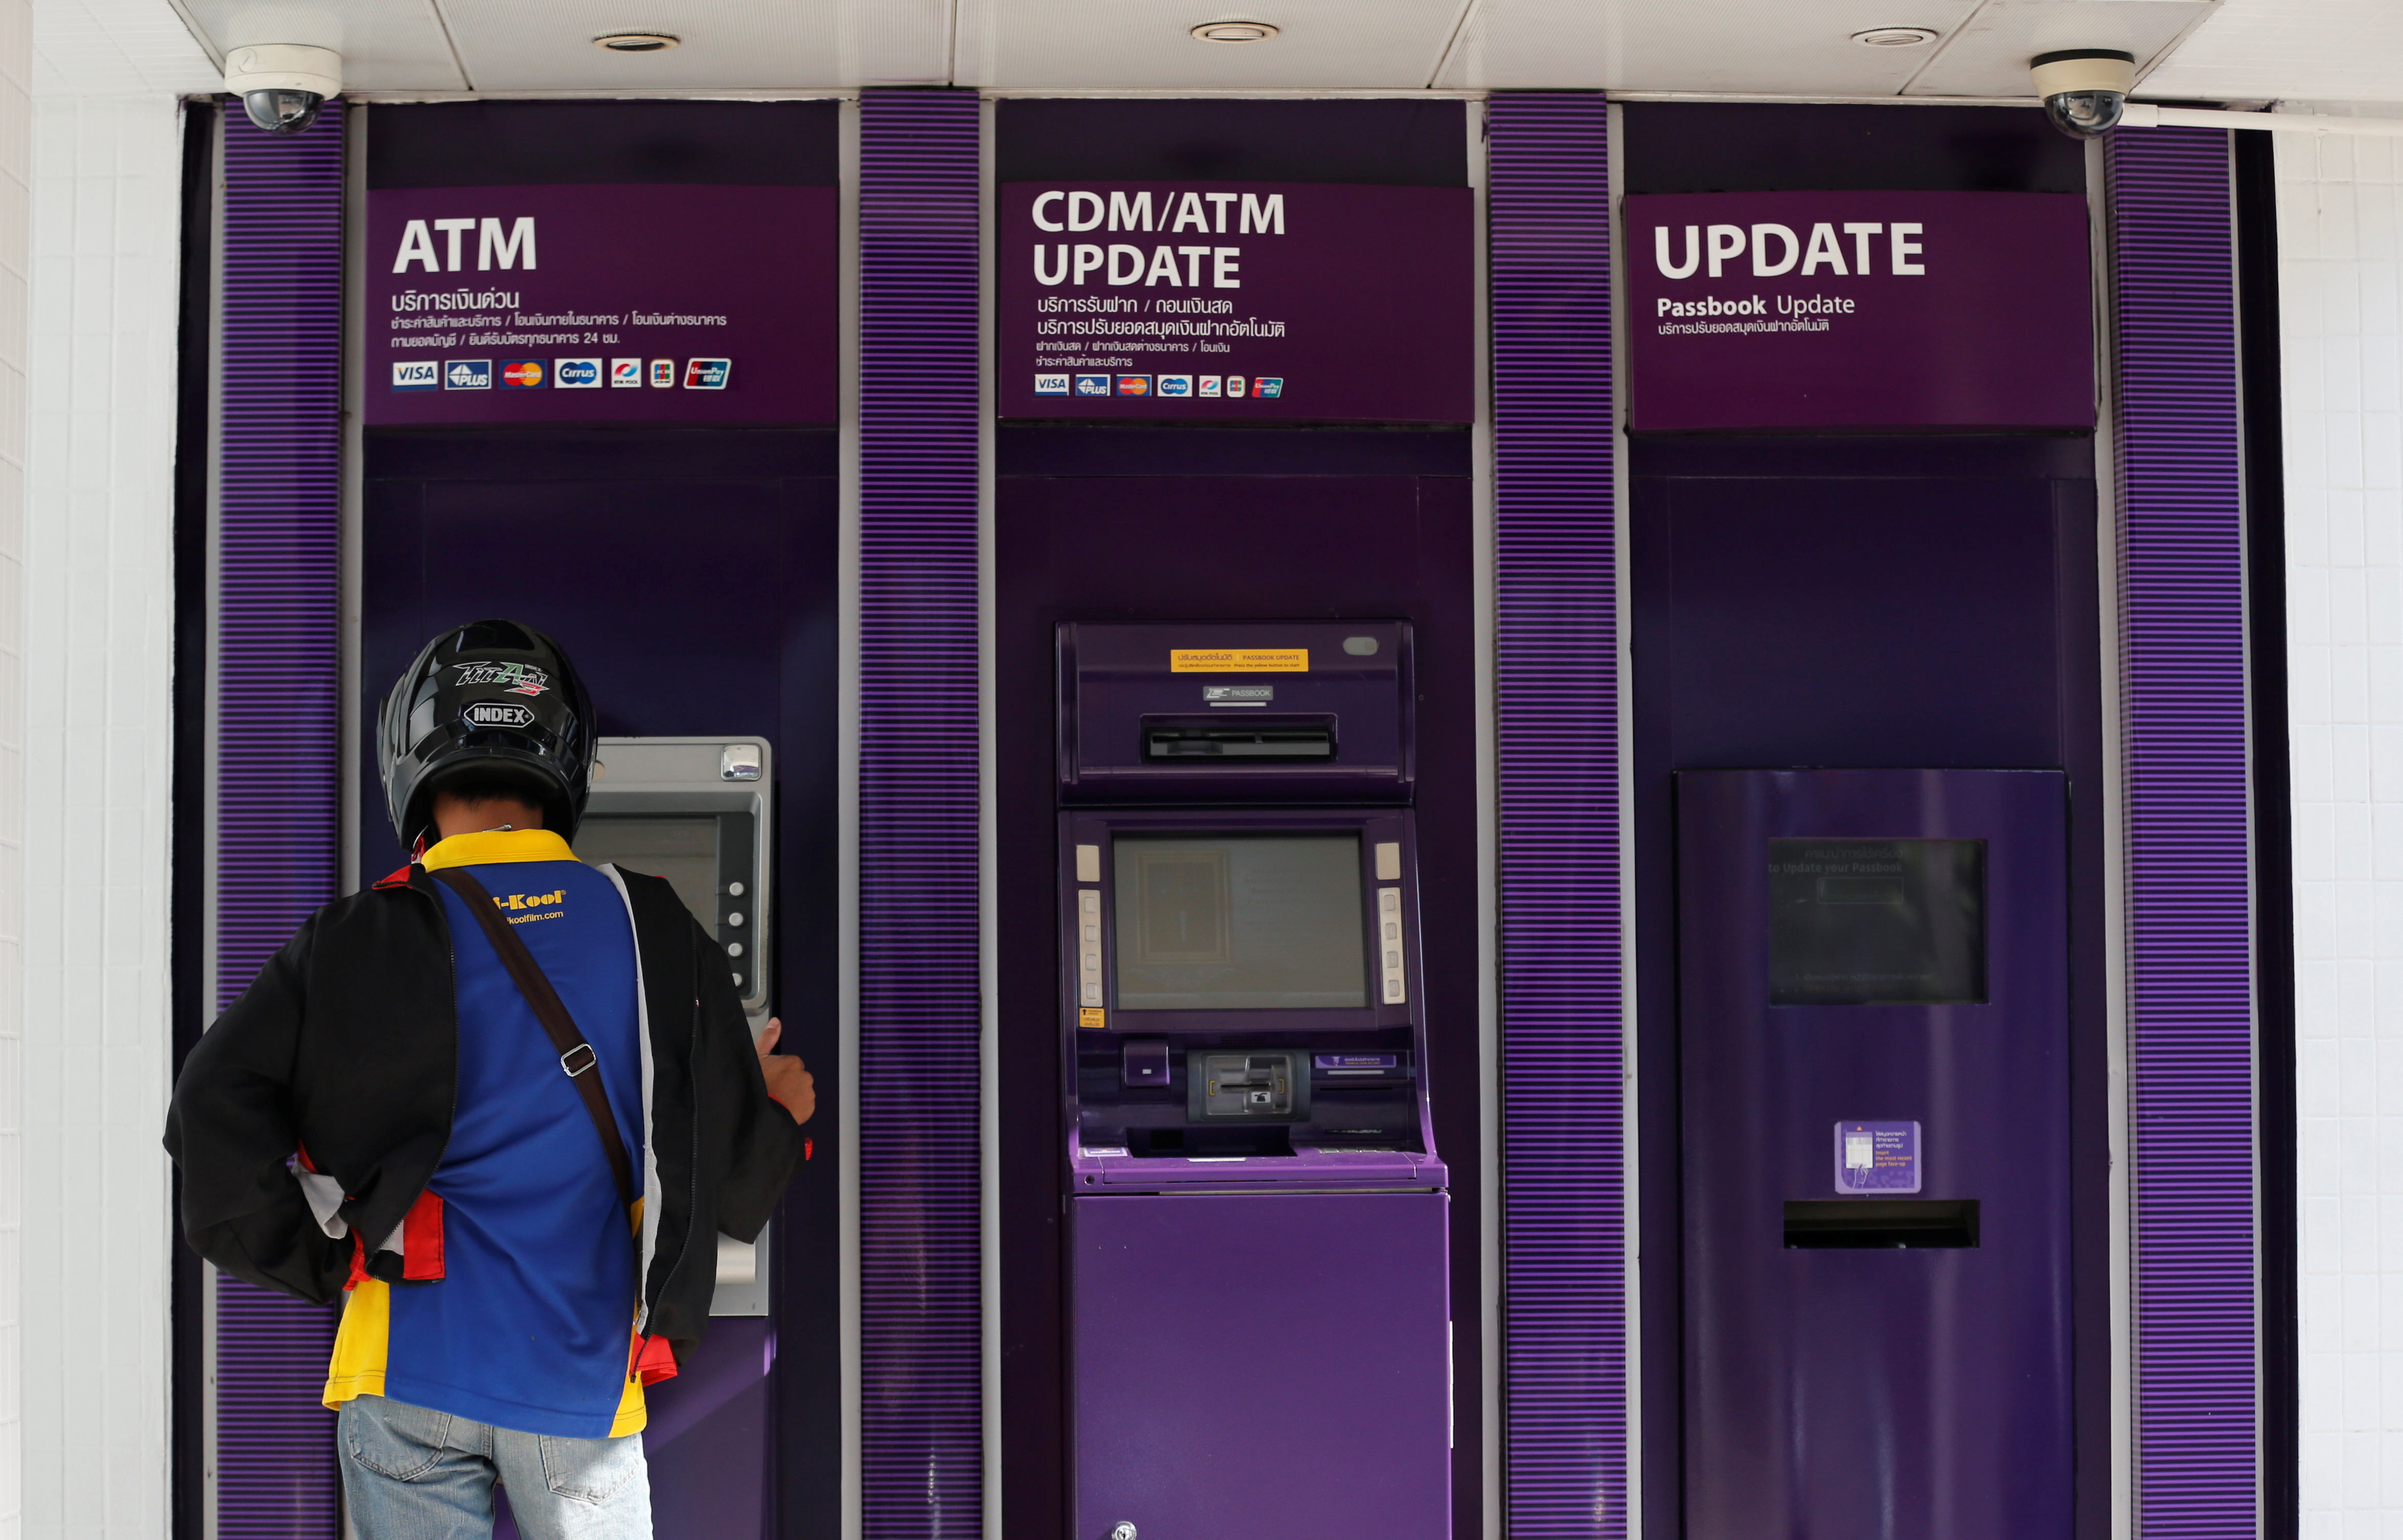 A man uses an ATM machine at the Siam Commercial Bank branch in central Bangkok, Thailand, January 23, 2017. REUTERS/Chaiwat Subprasom - RTSWXOX